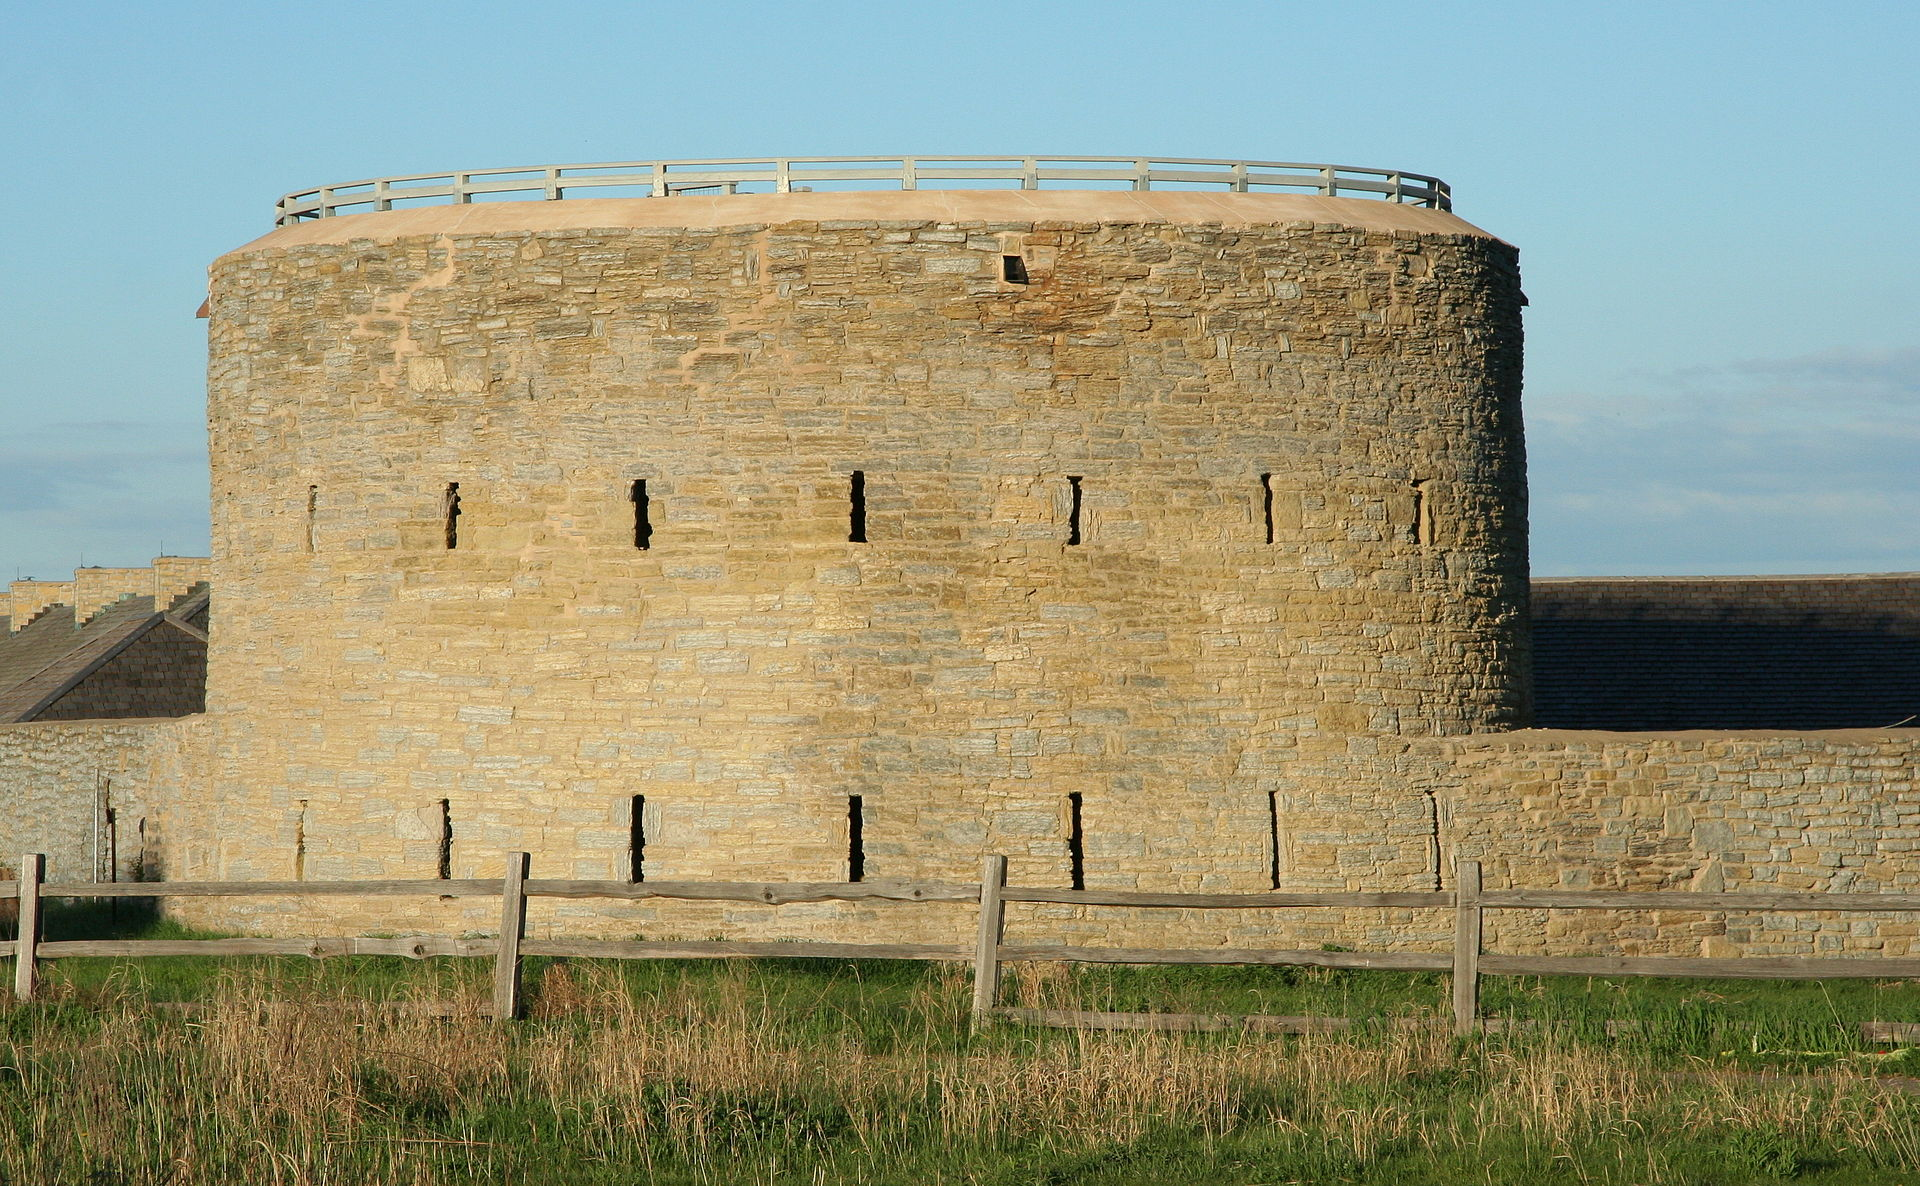 This round tower is located at the west side of the fort.